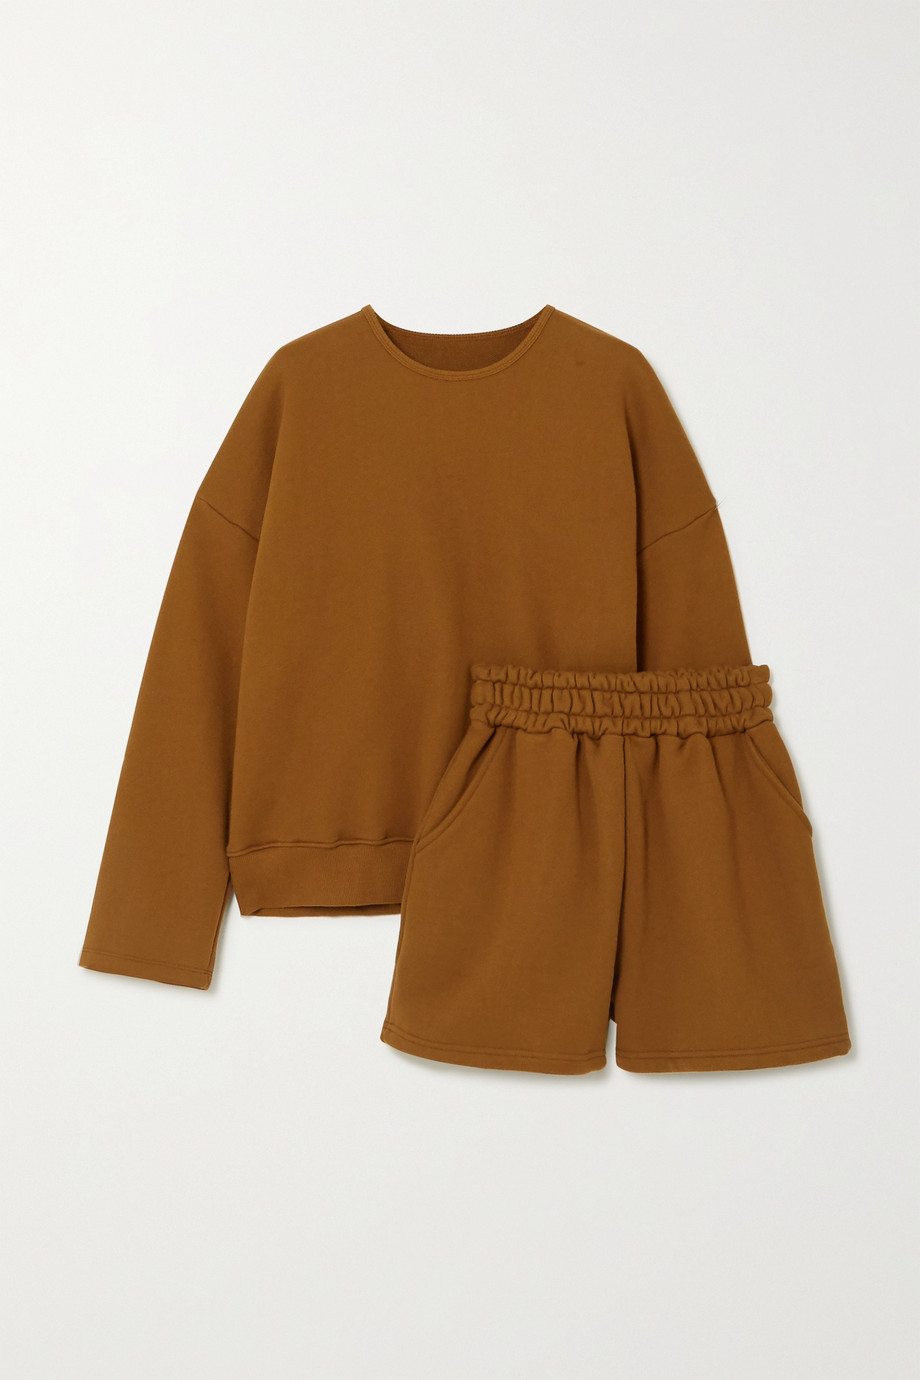 FRANKIE SHOP Jamie cotton-jersey sweatshirt and shorts set